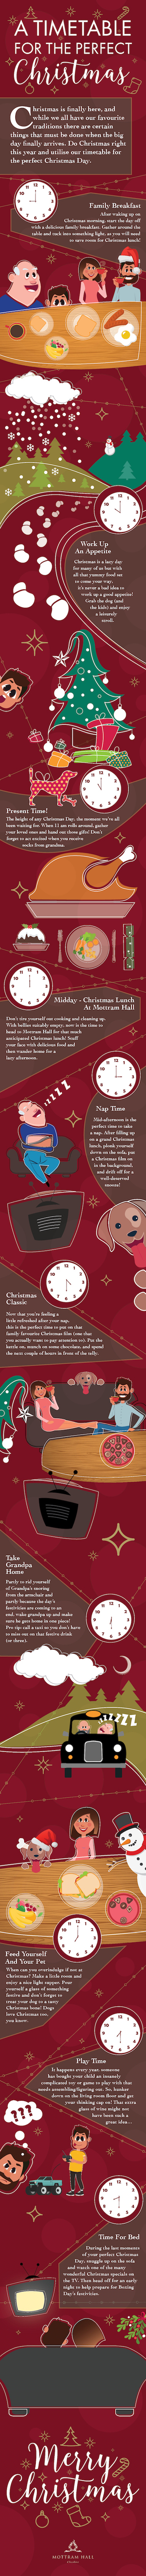 Christmas Infographic Mottram Hall